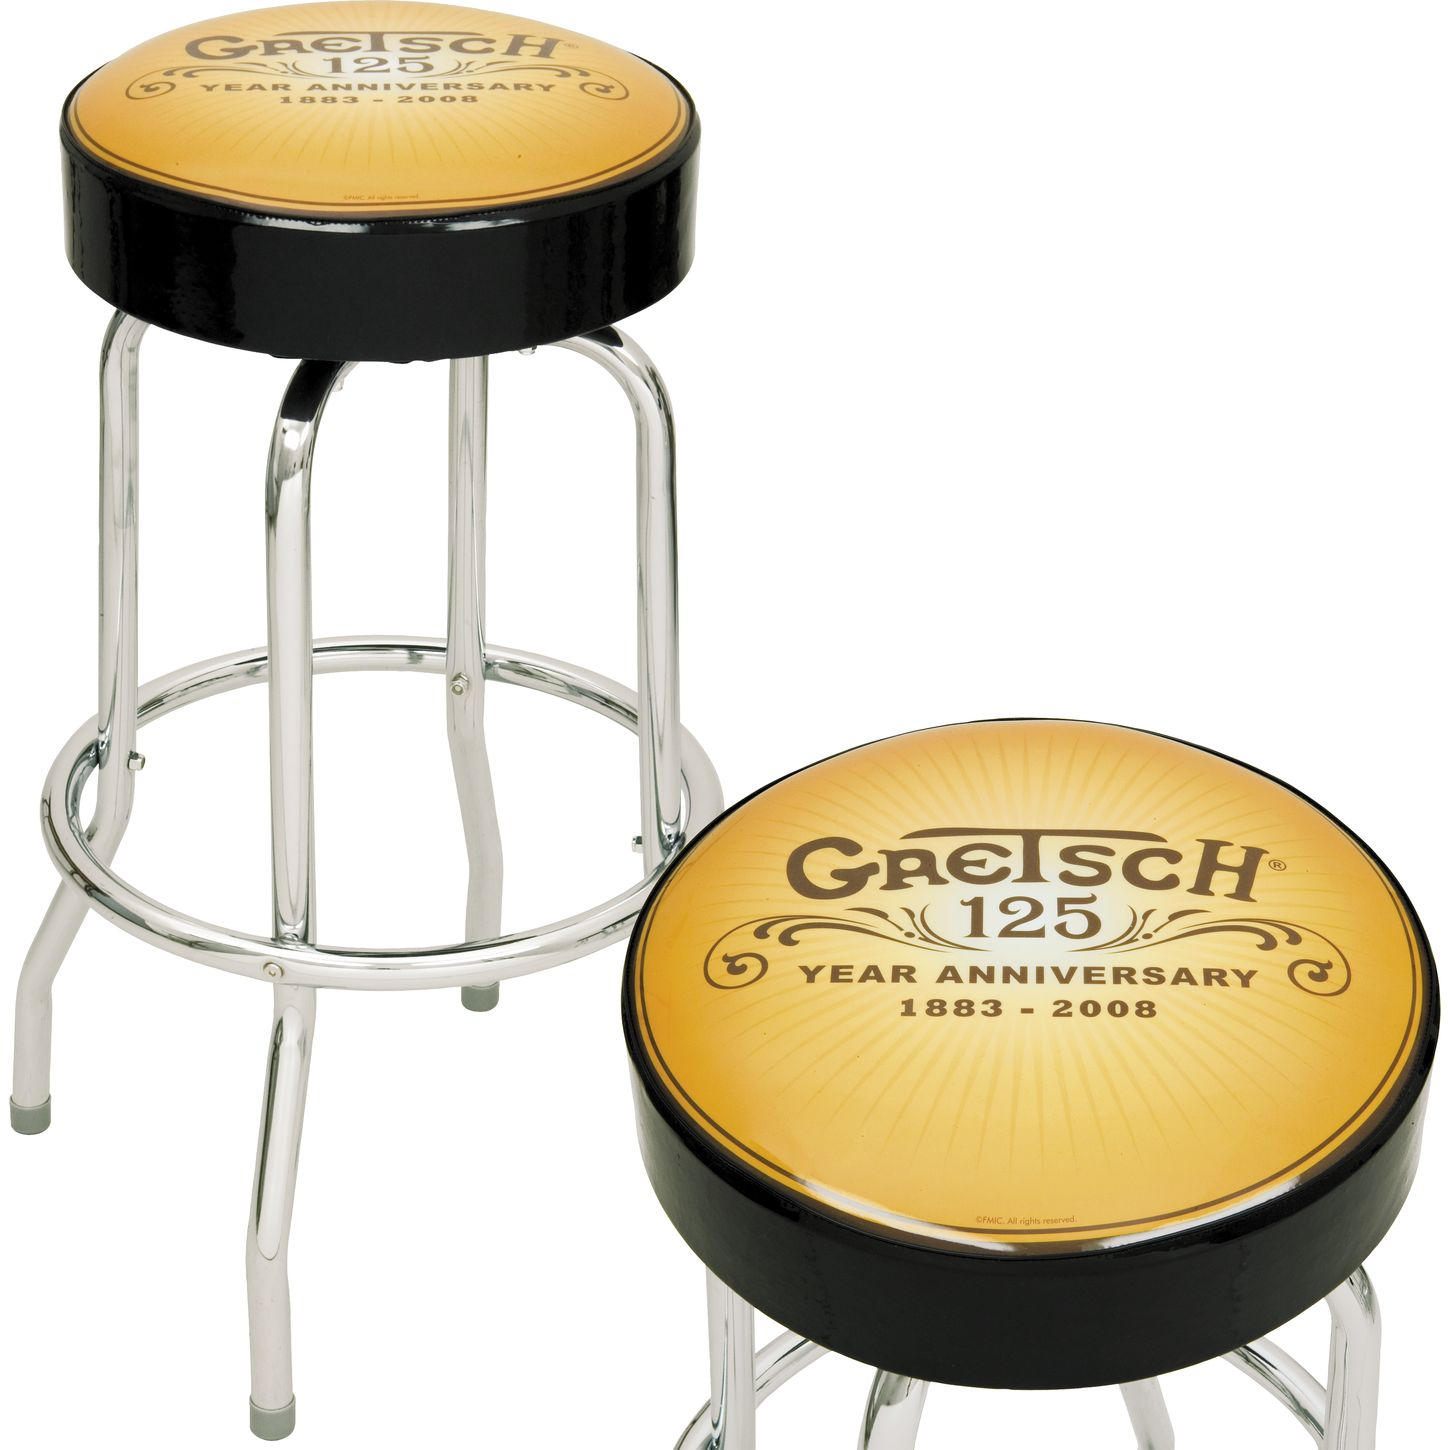 Gretsch 30 Inch Limited Edition Guitarist Stool 2 Pack  : DV020JpgJumbo459037 from www.musiciansfriend.com size 1450 x 1450 jpeg 139kB